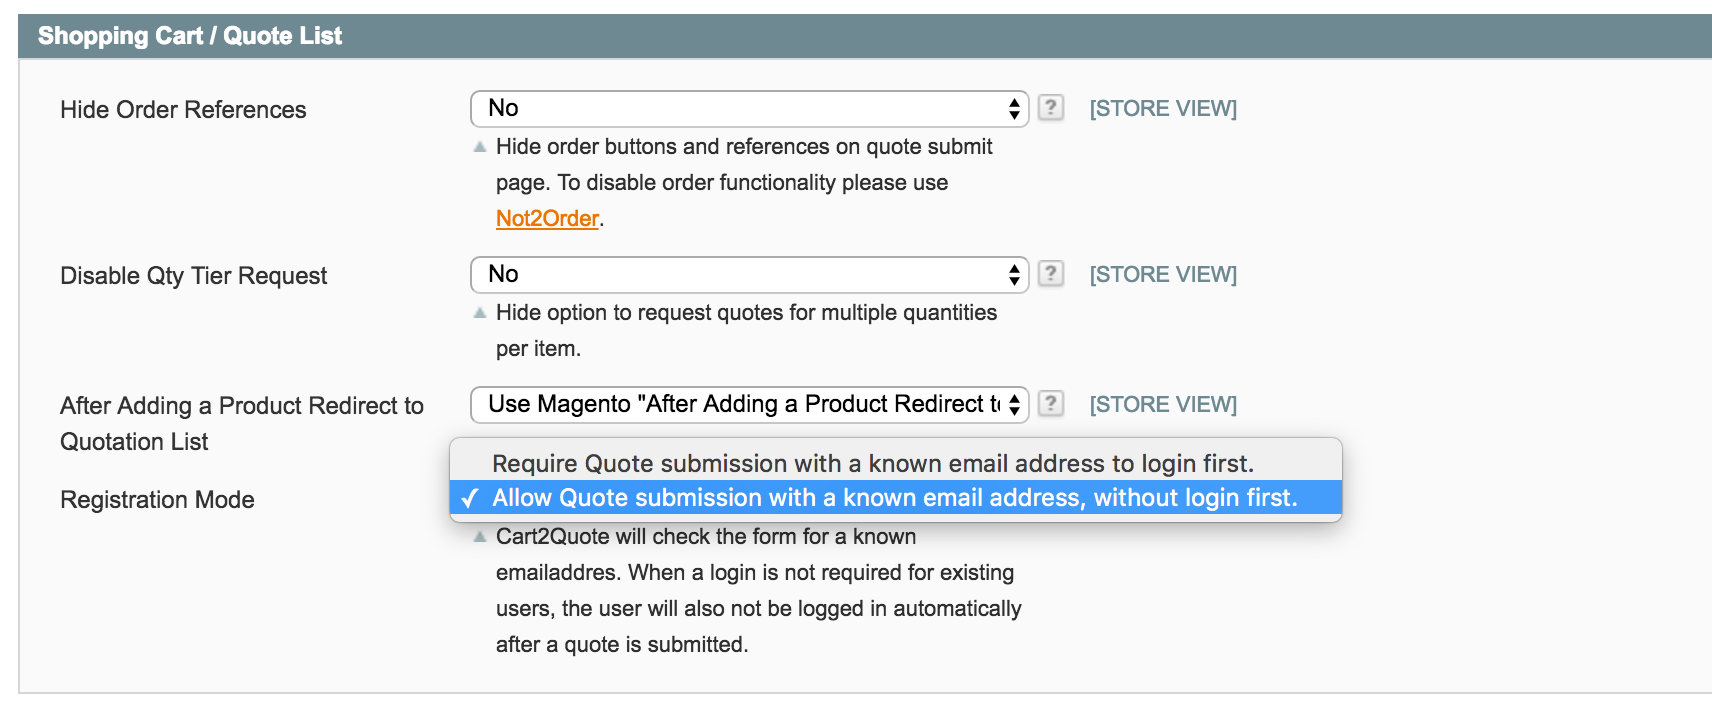 Quote List Request Quote Without User Account  Cart2Quote Support